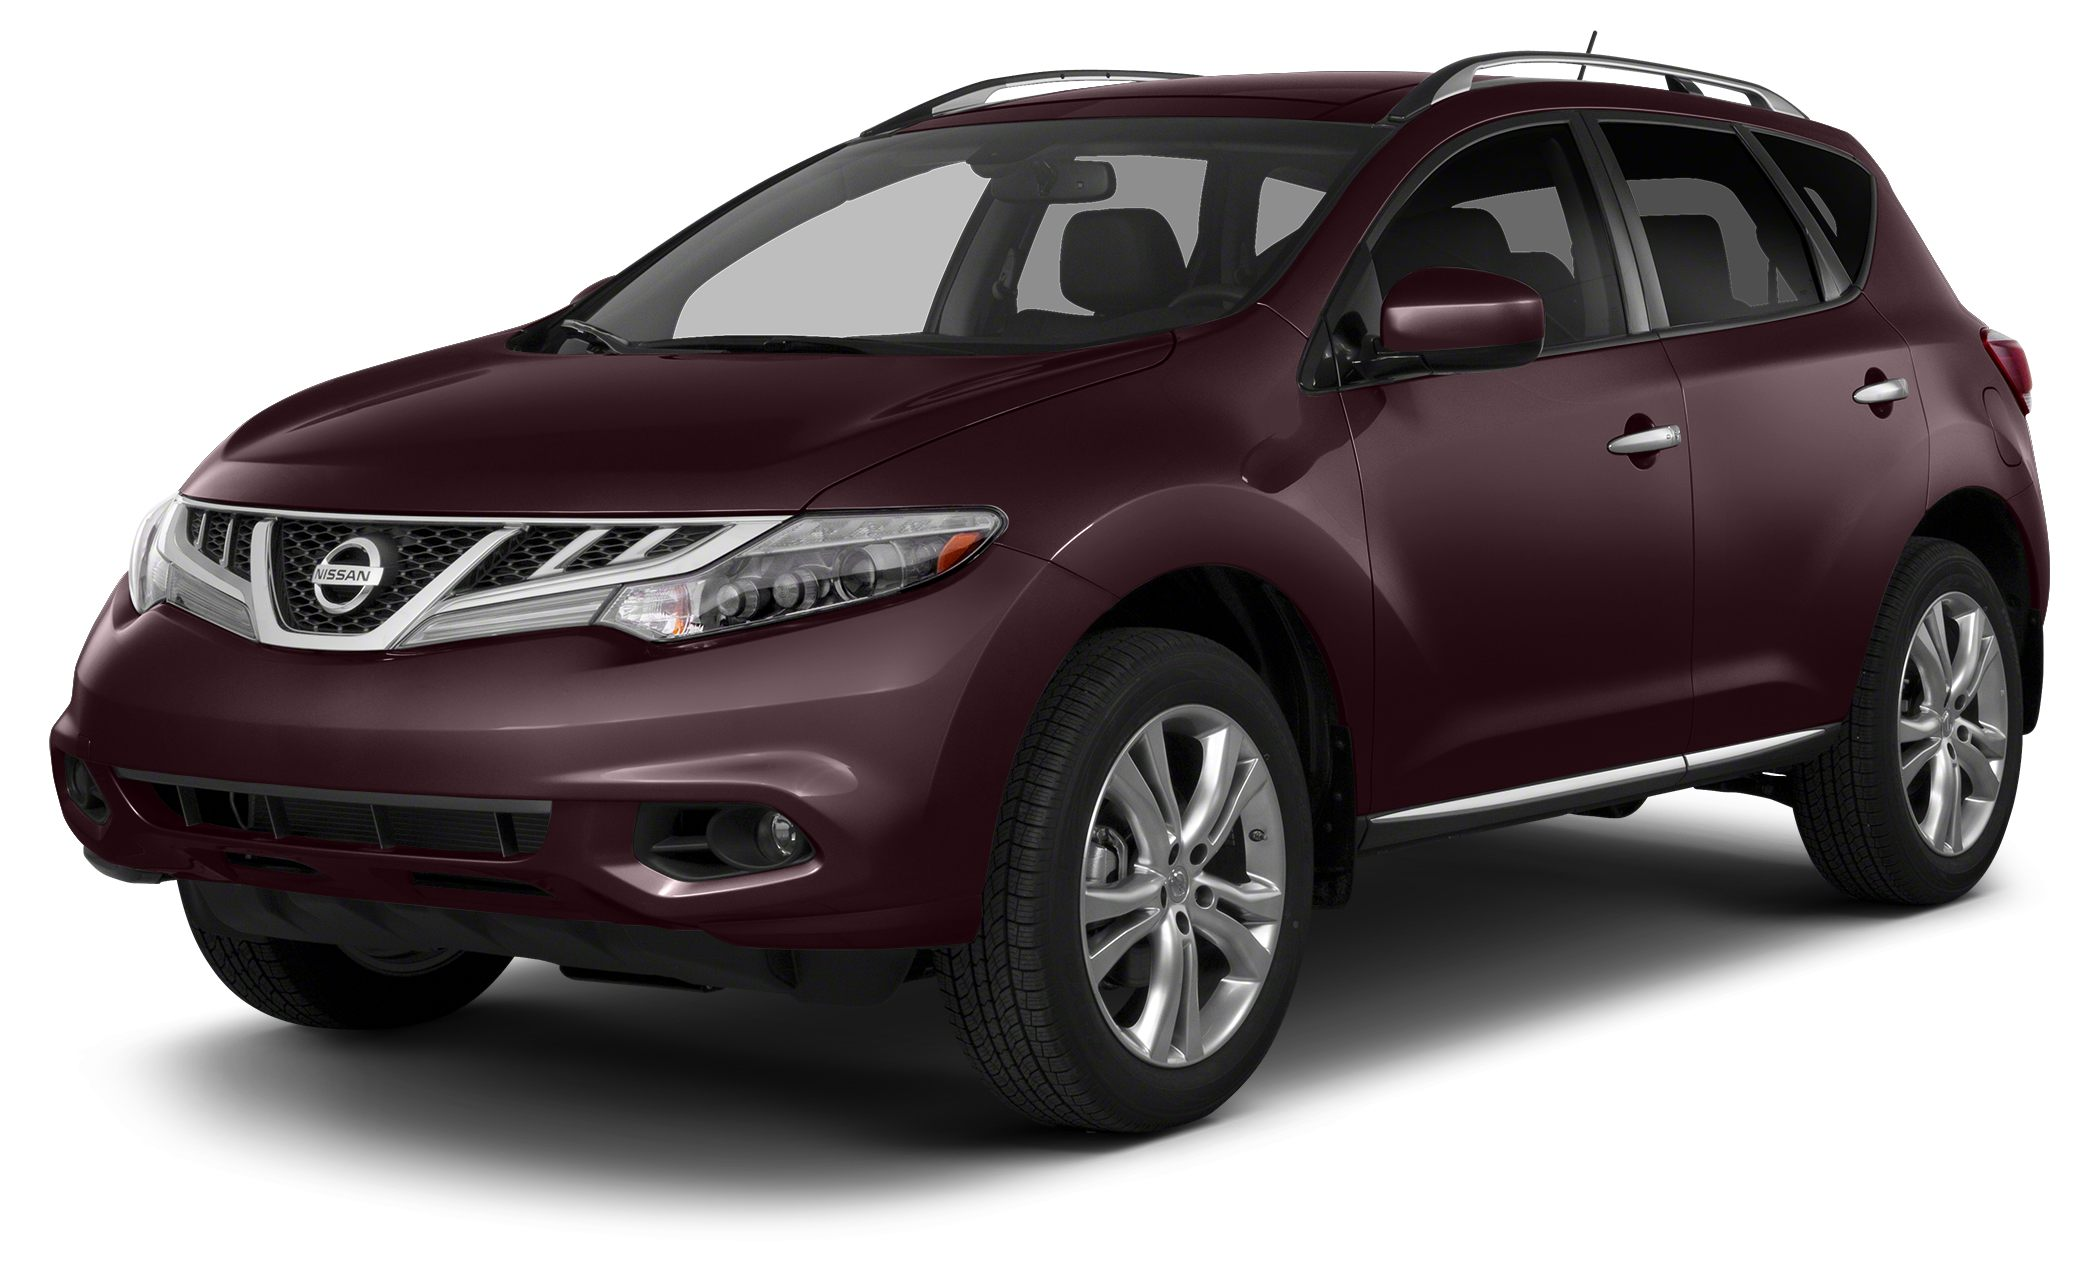 2014 Nissan Murano S Red 2014 Nissan Murano S AWD CVT with Xtronic 35L V6 DOHC CVT with Xtronic